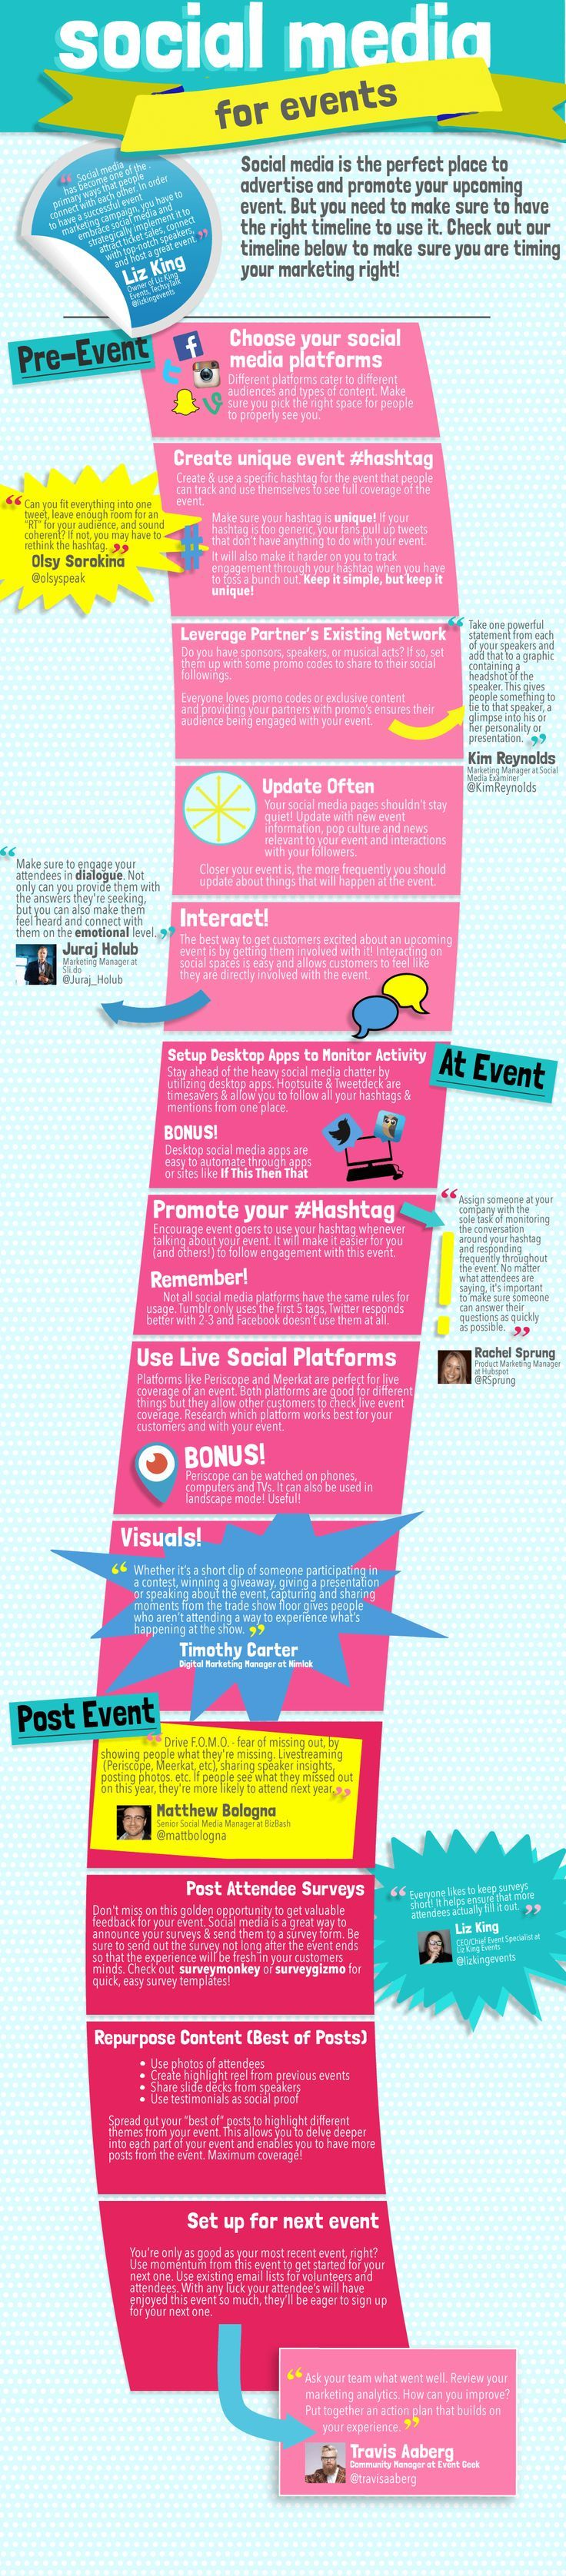 Event marketing can be rough and it all comes down to timing. Social media makes it easier though! Check out our timeline with tips from leading event marketers on the do's and don'ts of when and how to market your event on social media.  Learn more at https://ticketbud.com/p/online-ticket-sales-system-for-events: